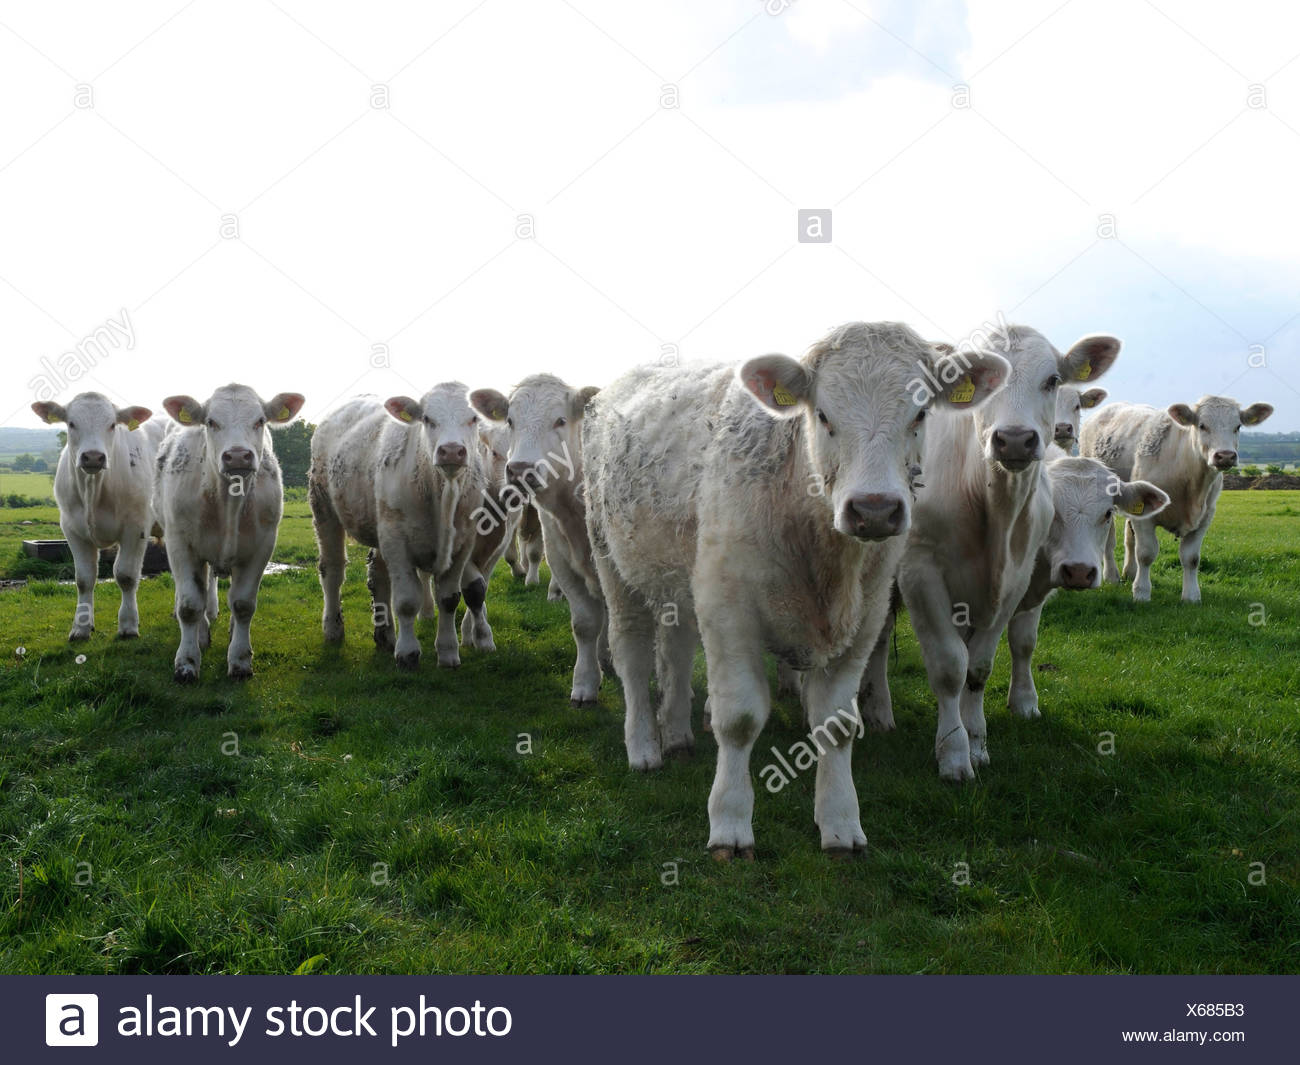 A line of white cows, the cows are angry. - Stock Image